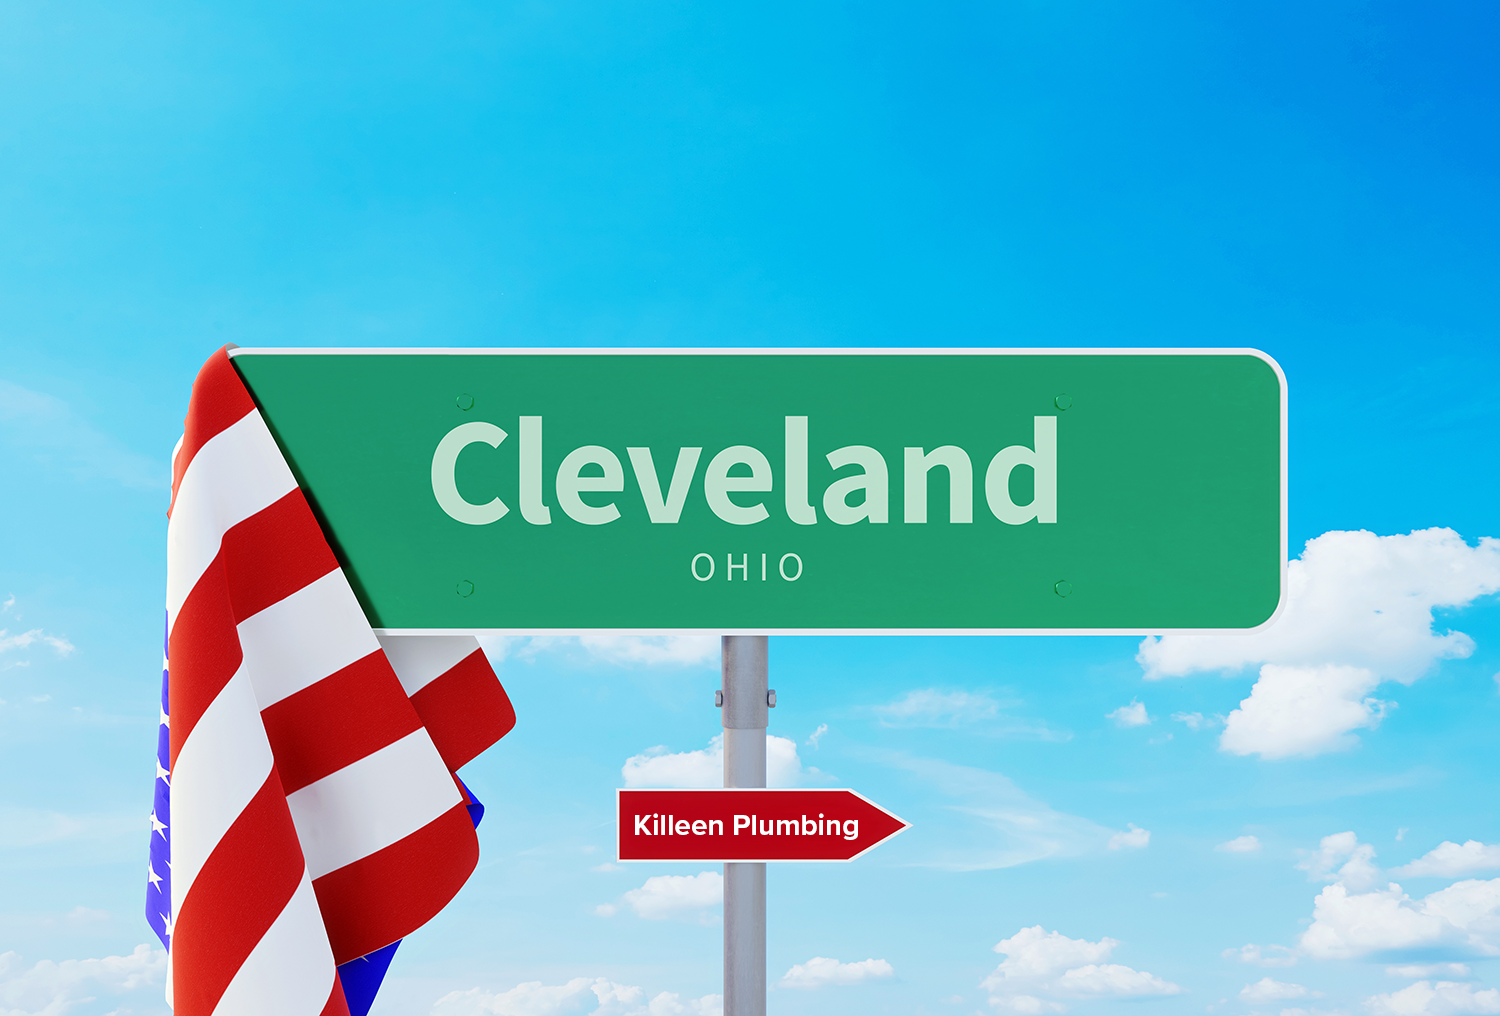 A sign in Cleveland, OH pointing to Killeen Plumbing